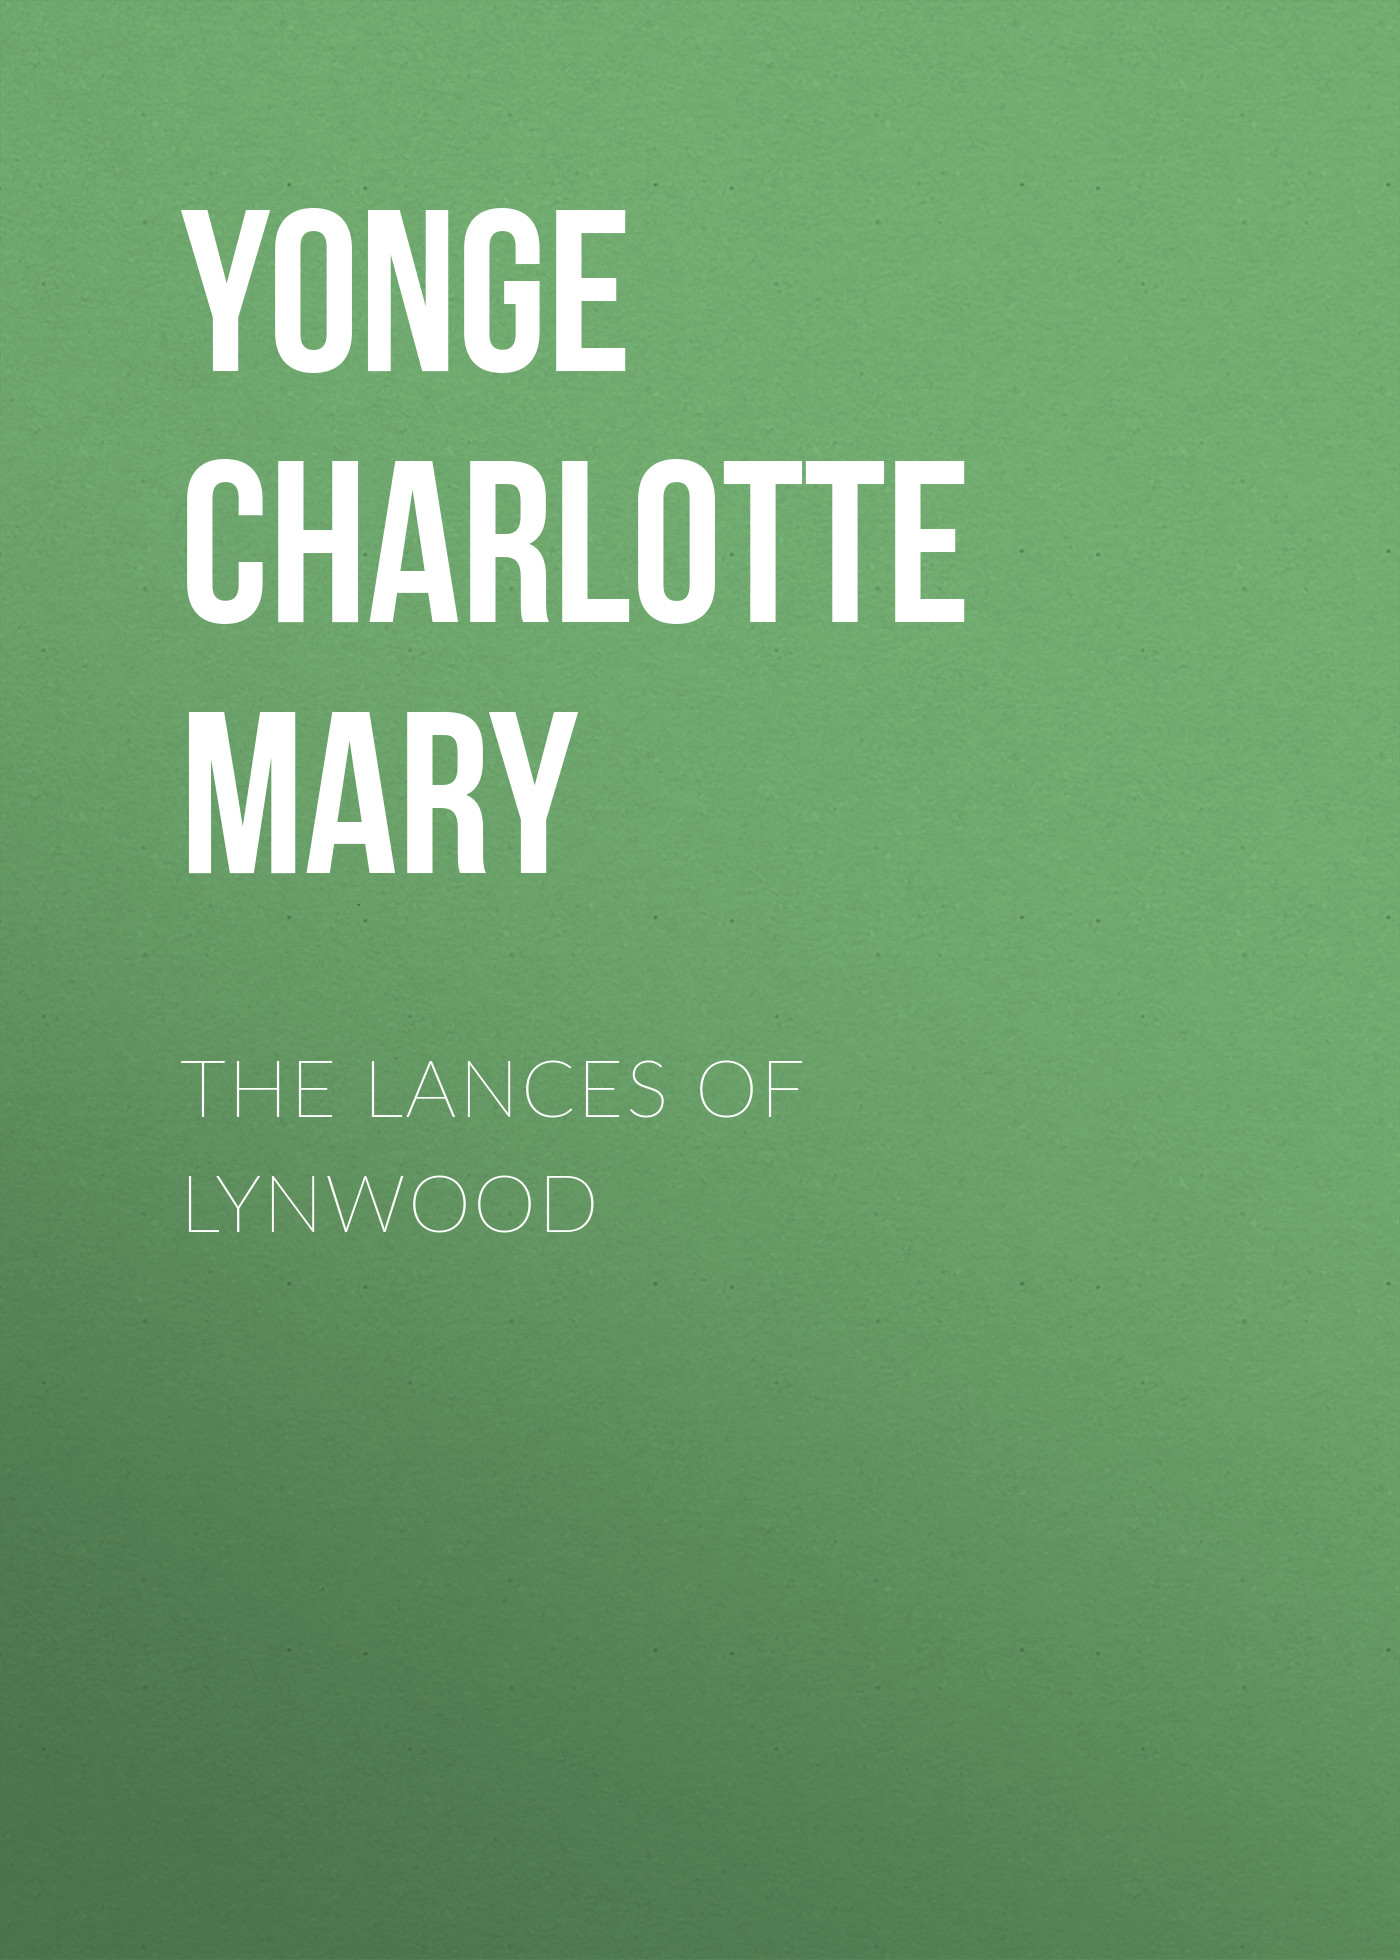 Yonge Charlotte Mary The Lances of Lynwood yonge charlotte mary countess kate